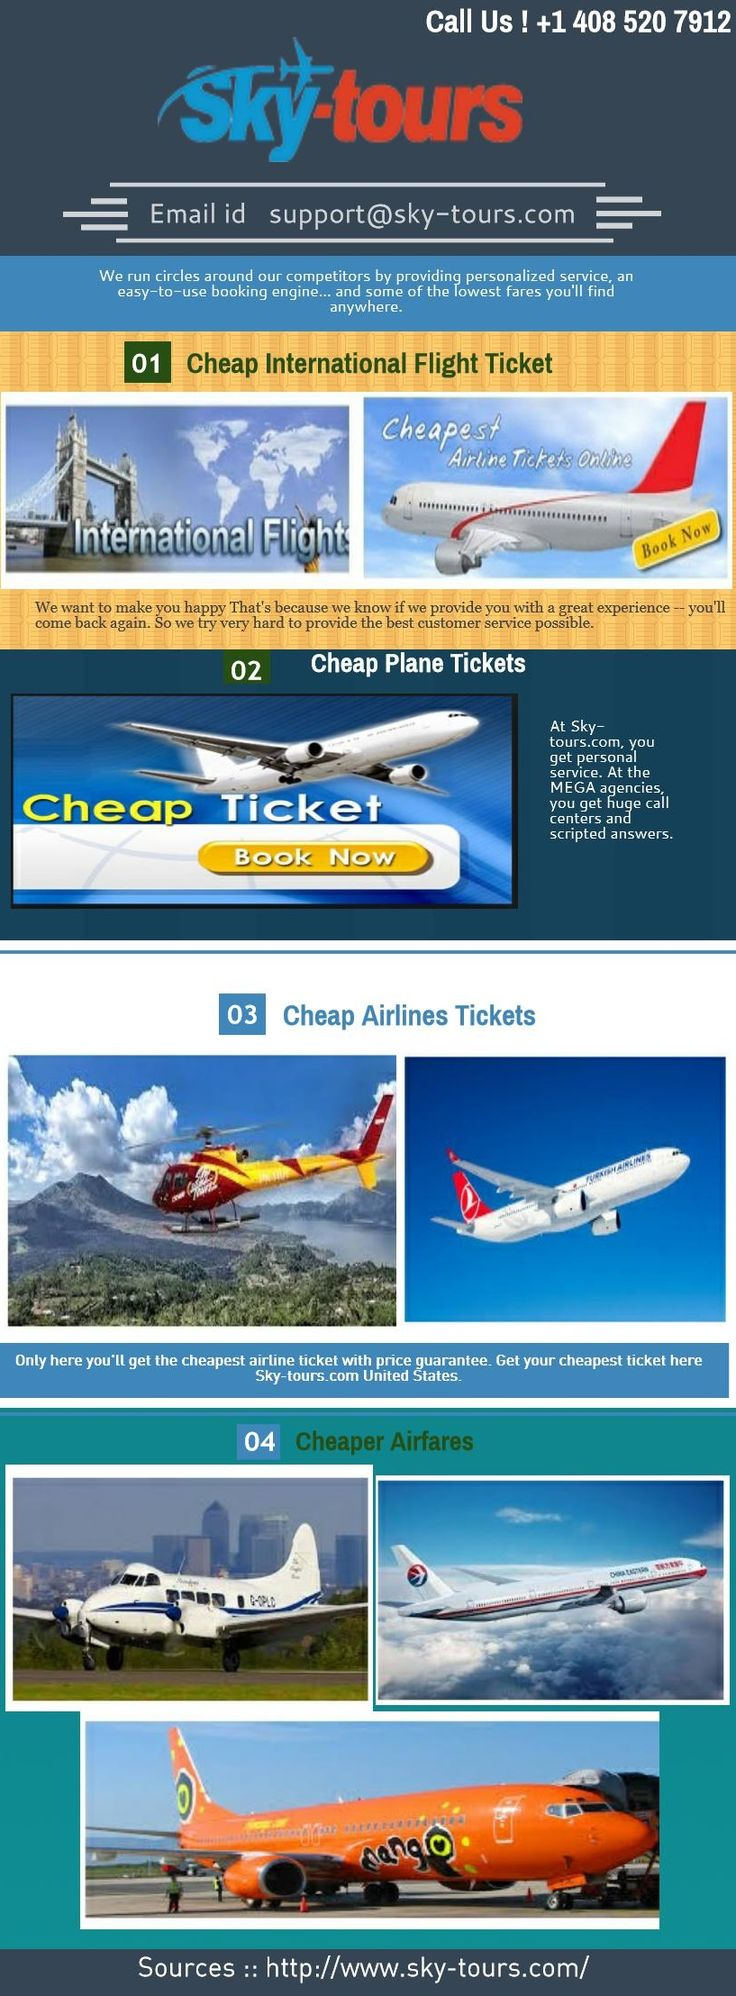 The leading player in online cheap plane tickets in USA, sky-tours offers great offers, some of the cheaper airfares, exclusive discounts of cheap plane tickets from Oslo to Vienna, a wide reach in terms of destinations and a seamless online booking experience. International and domestic flights, and with just a few clicks you can complete your booking.